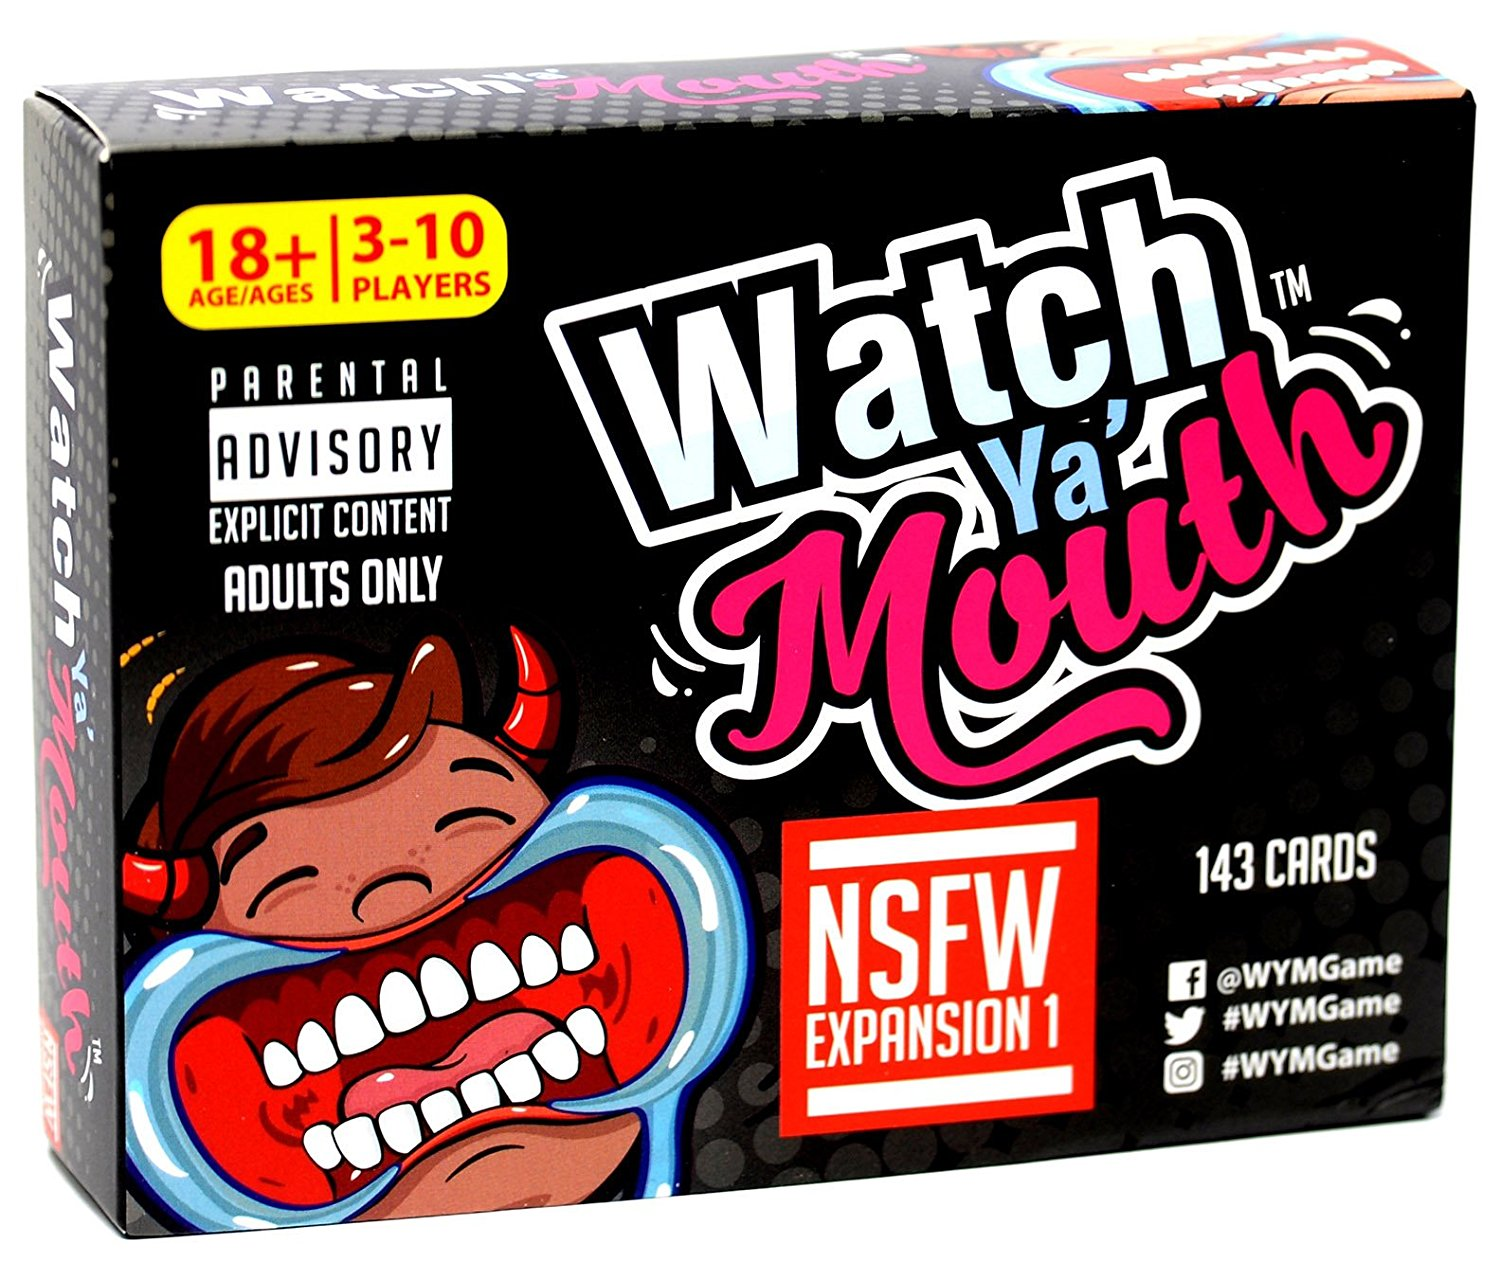 81goC2Nj4lL. SL1500  - Watch Ya' Mouth Adult Phrase Card Game Expansion Pack